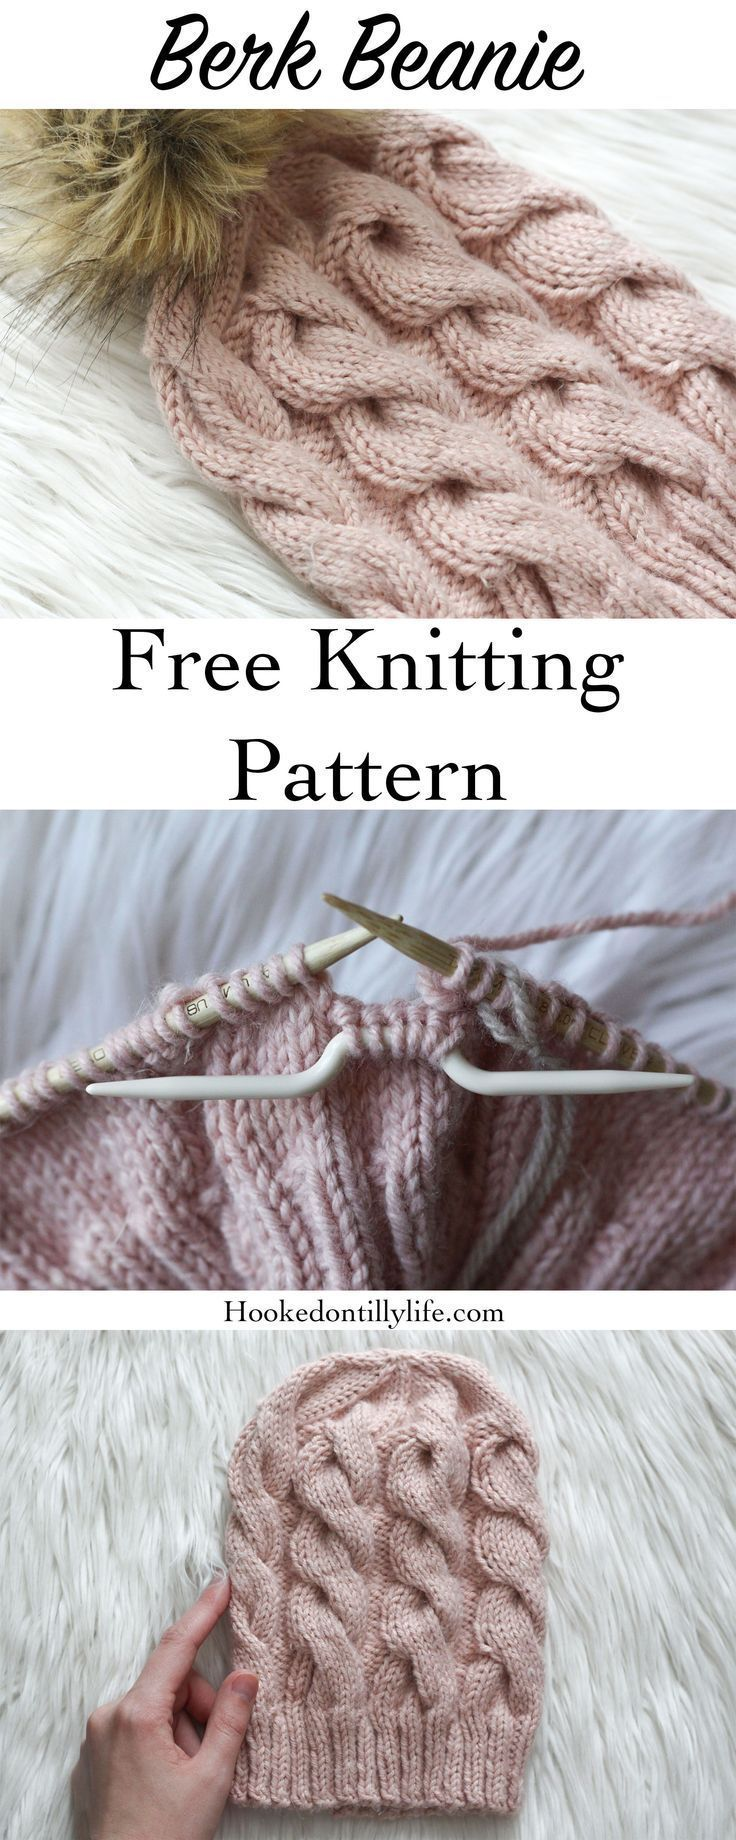 free knitting pattern cables cable knit beanie winter hat ski hat braid be free knitting pattern cables cable knit beanie winter hat ski hat braid be